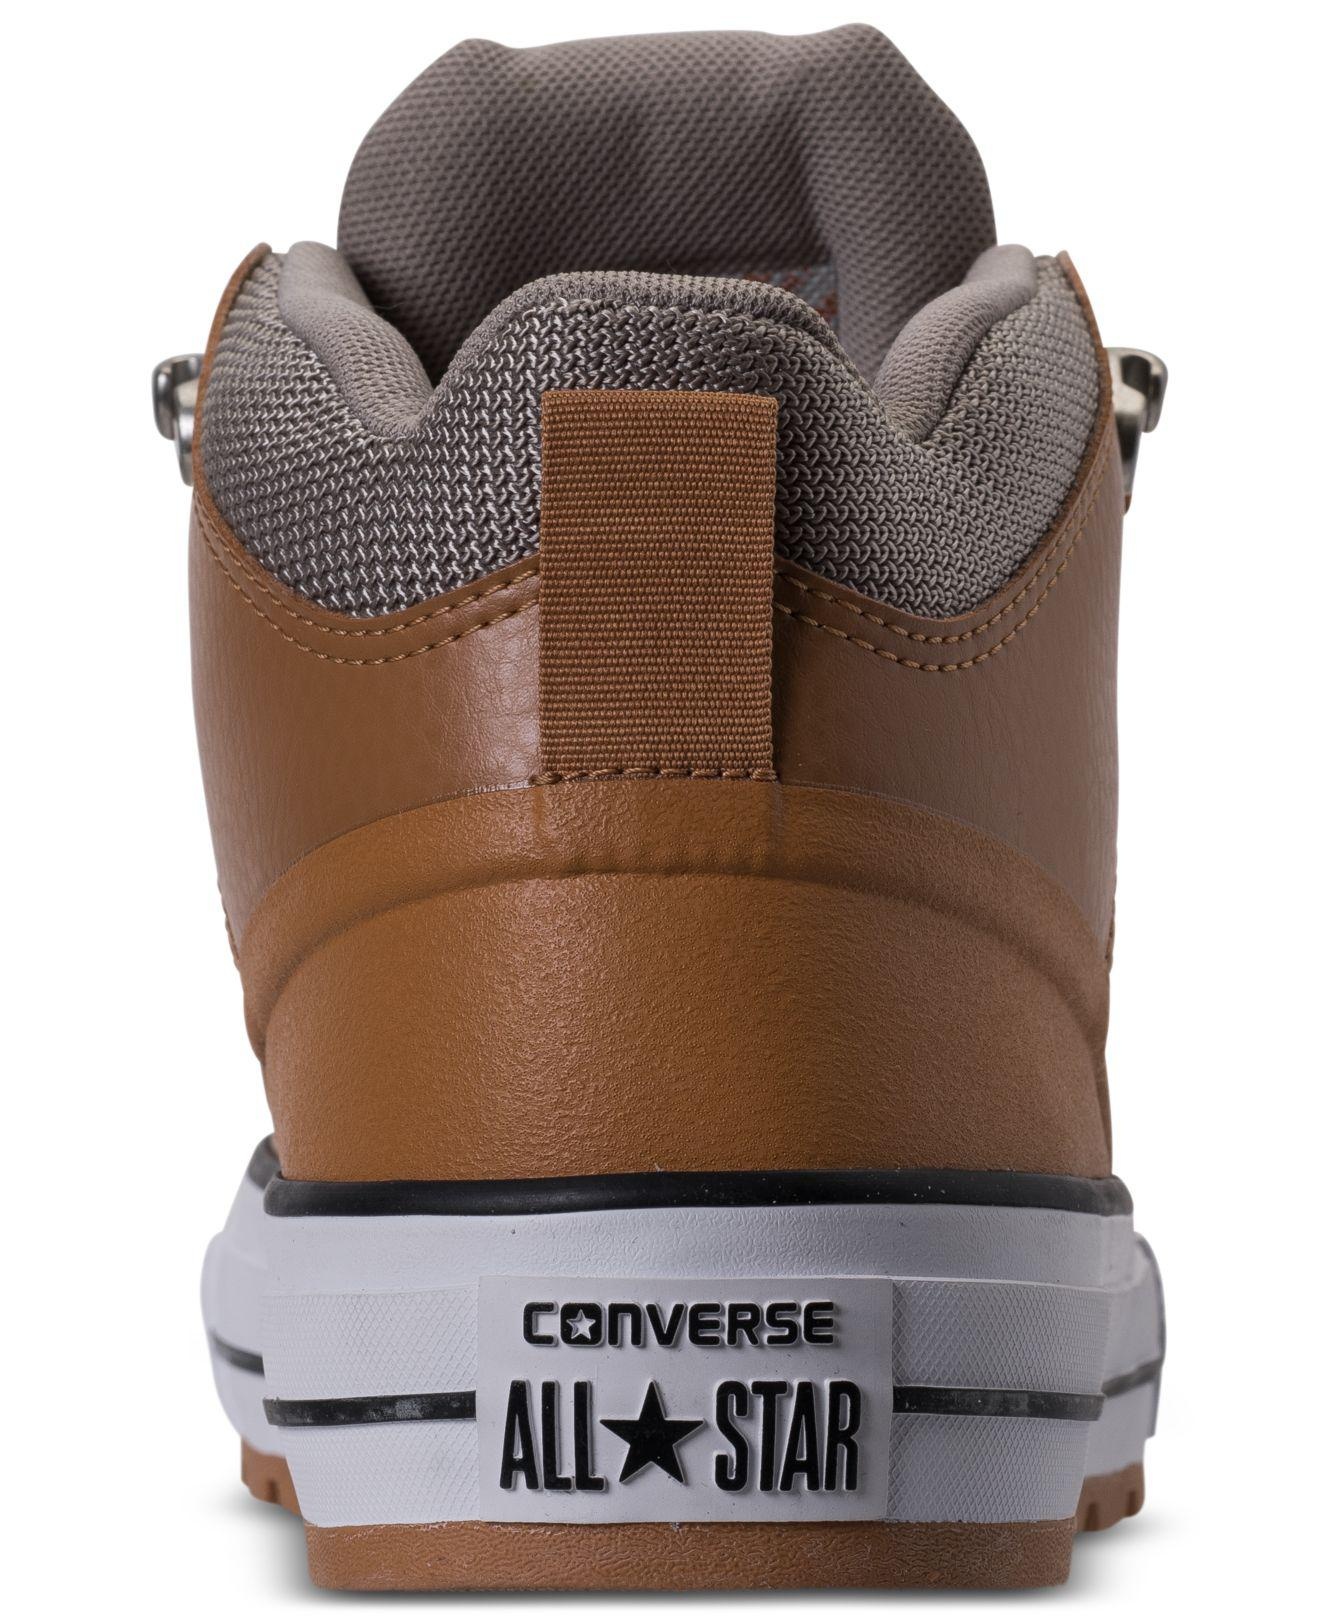 cbfaf47a2a12 Lyst - Converse Men s Chuck Taylor All Star Street Mid Leather ...